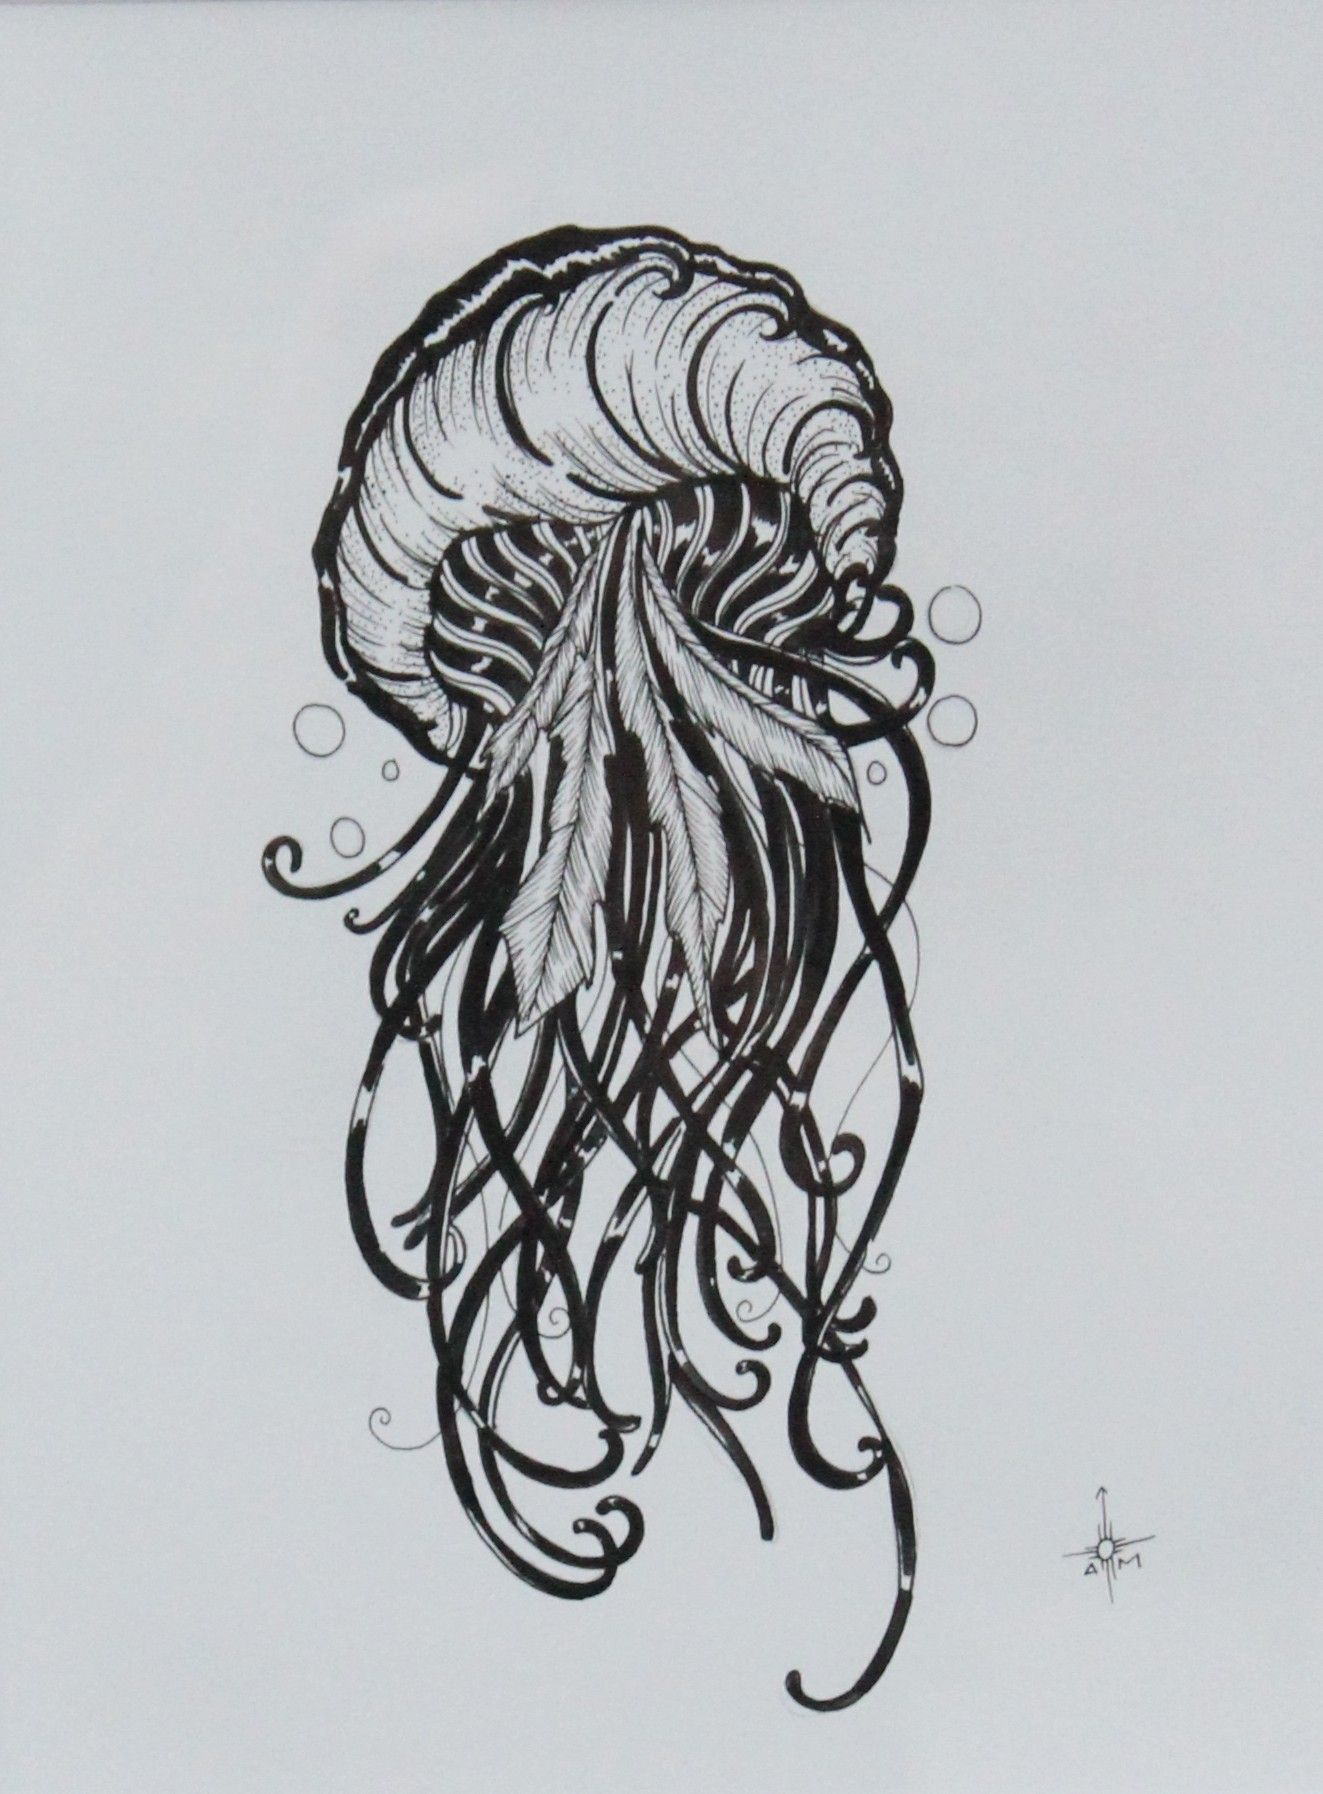 This is an image of Shocking Jellyfish Ink Drawing